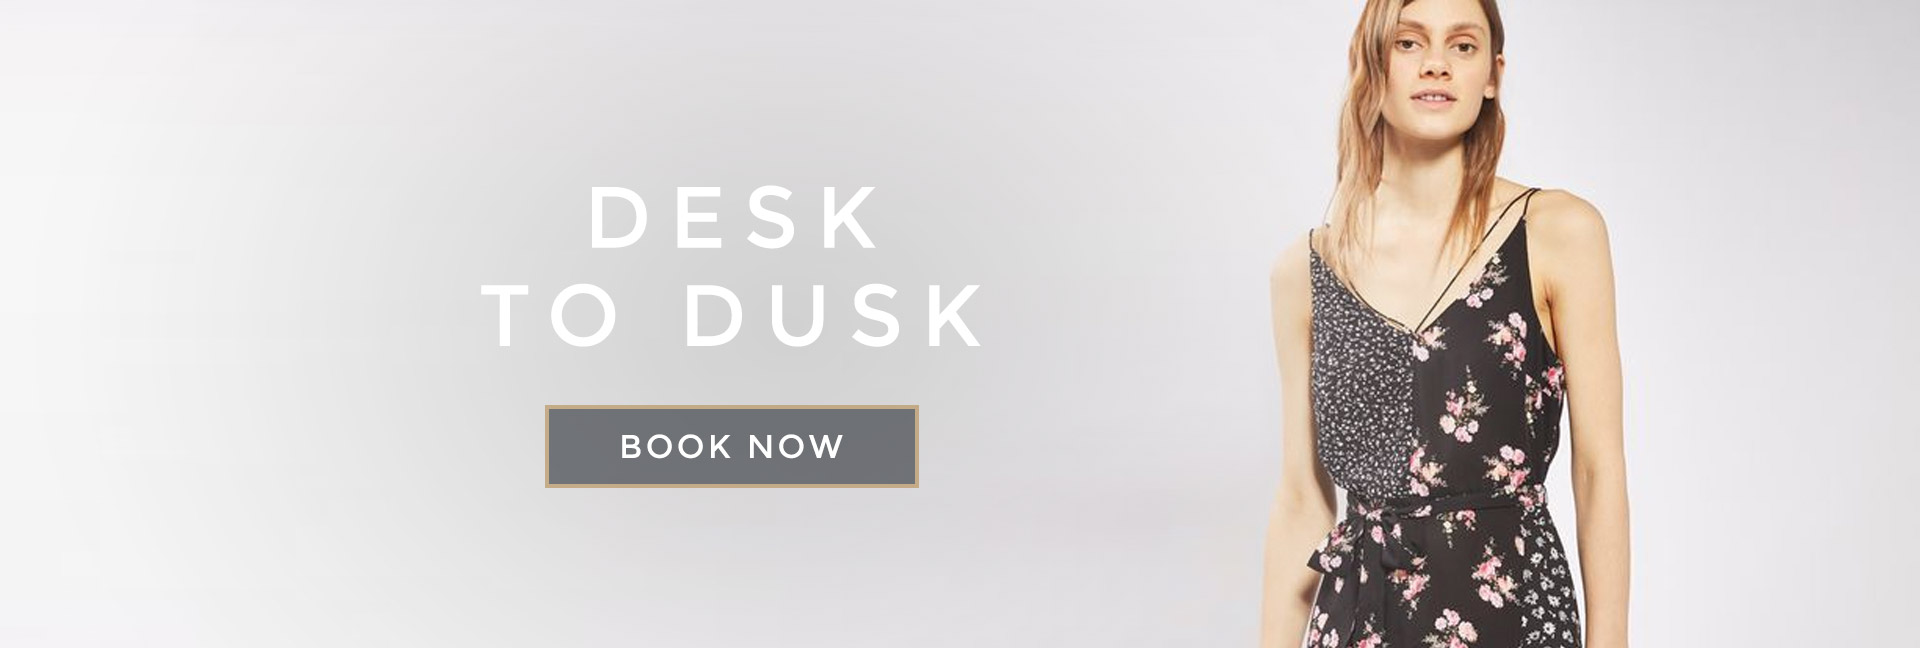 Desk to Dusk at All Bar One Newhall Street Birmingham - Book your table